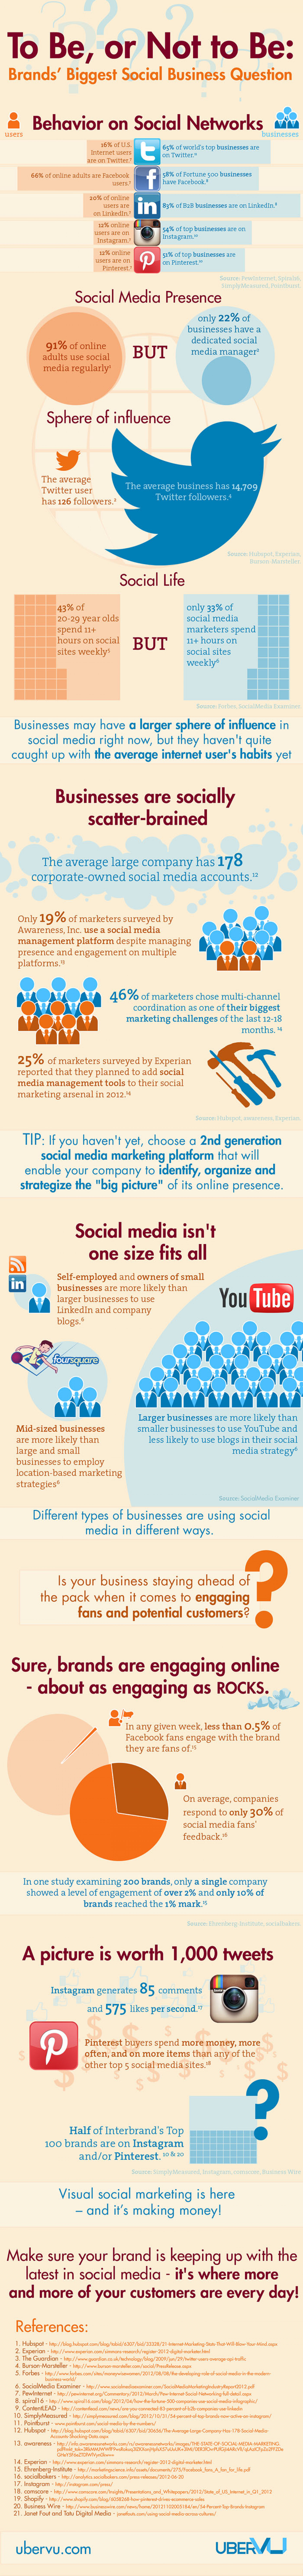 To Be or Not to Be: Brands' Biggest Social Business Question Infographic